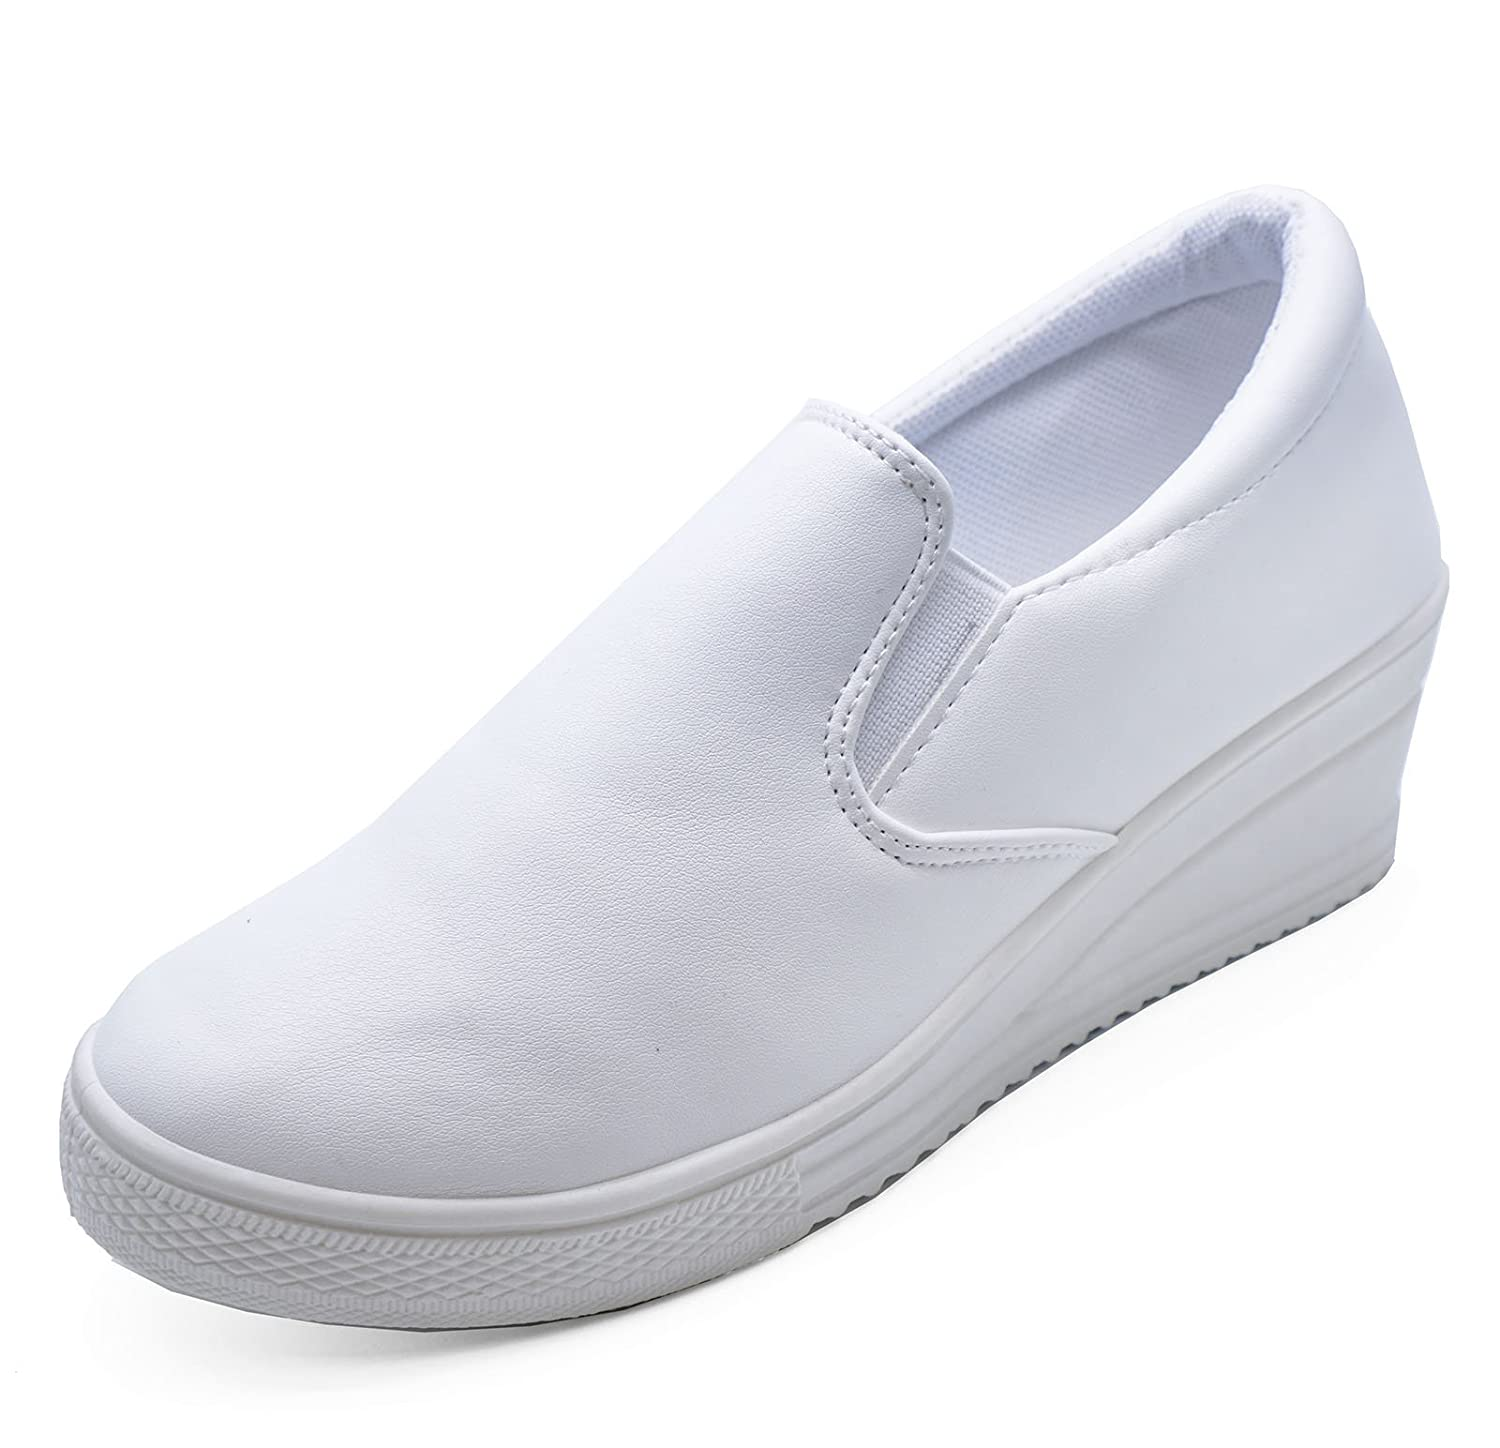 look out for order online fashion style Ladies White Slip-On Comfy Wedge Ankle Boots Trainers Casual Shoes Pumps  Sizes 3-8